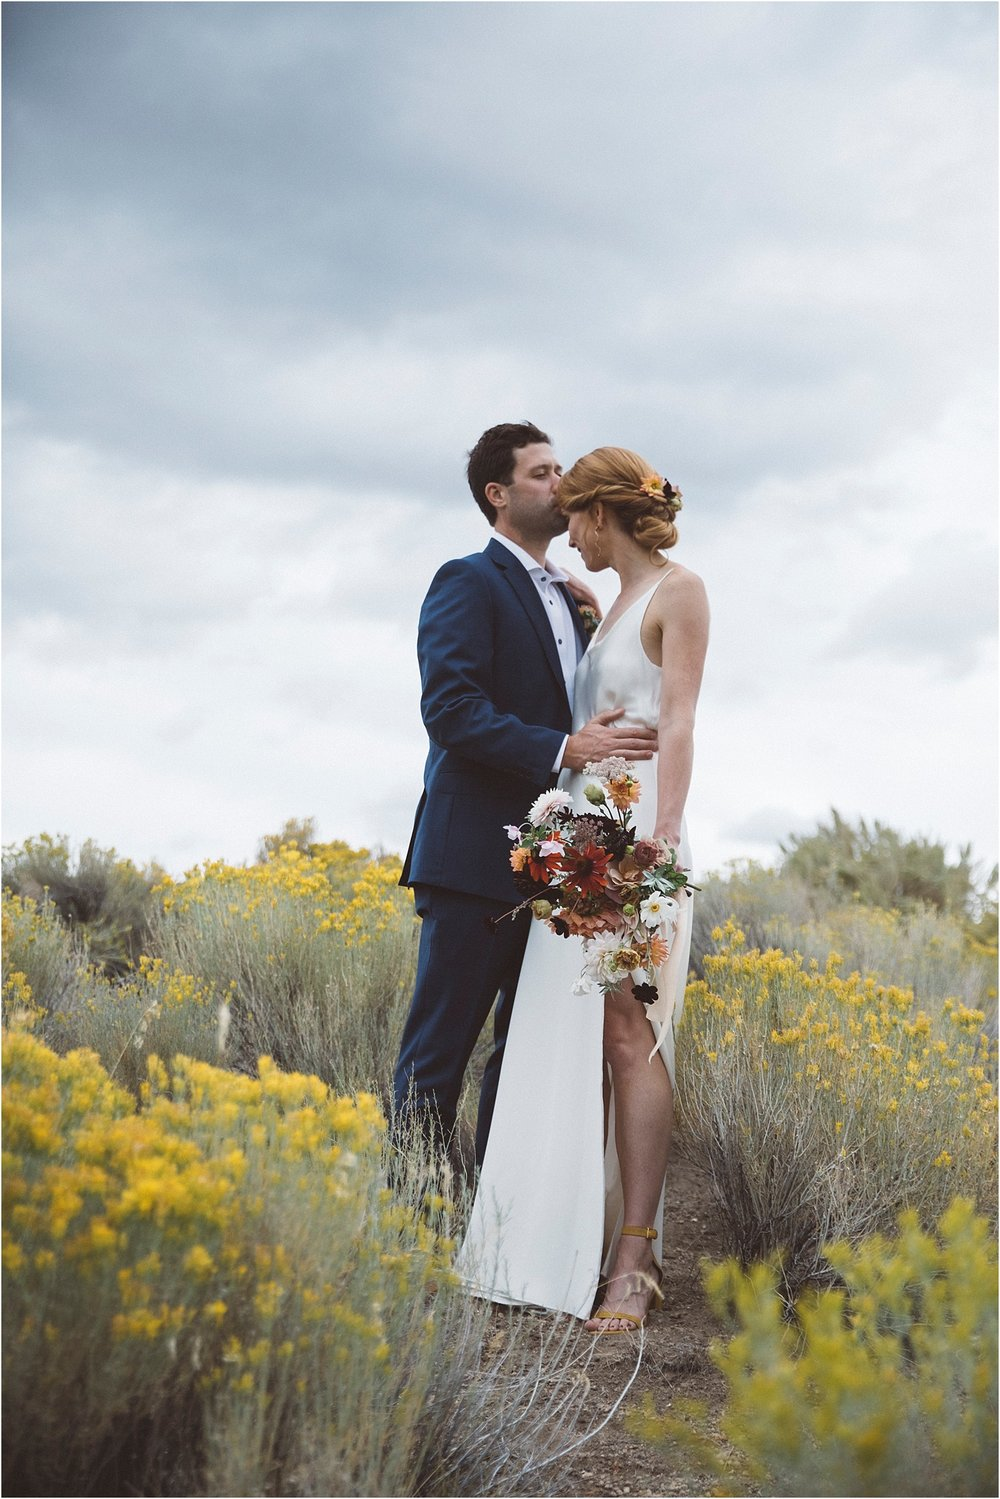 CAITLIN + JOE - BRASADA RANCH